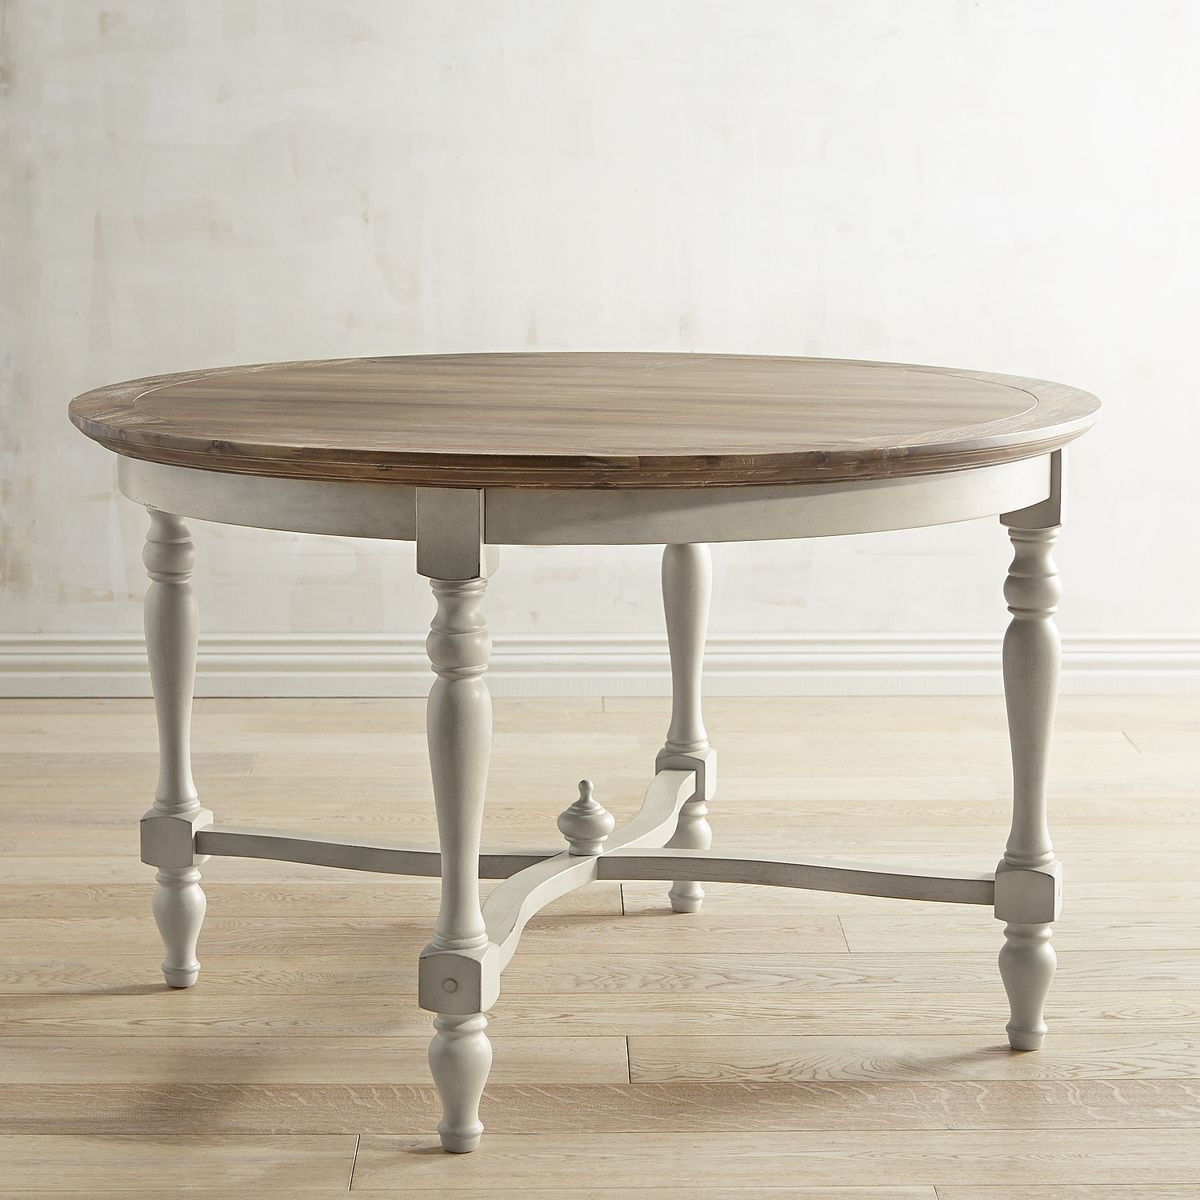 round kitchen tables round kitchen table Round kitchen table 48 in natural stonewash